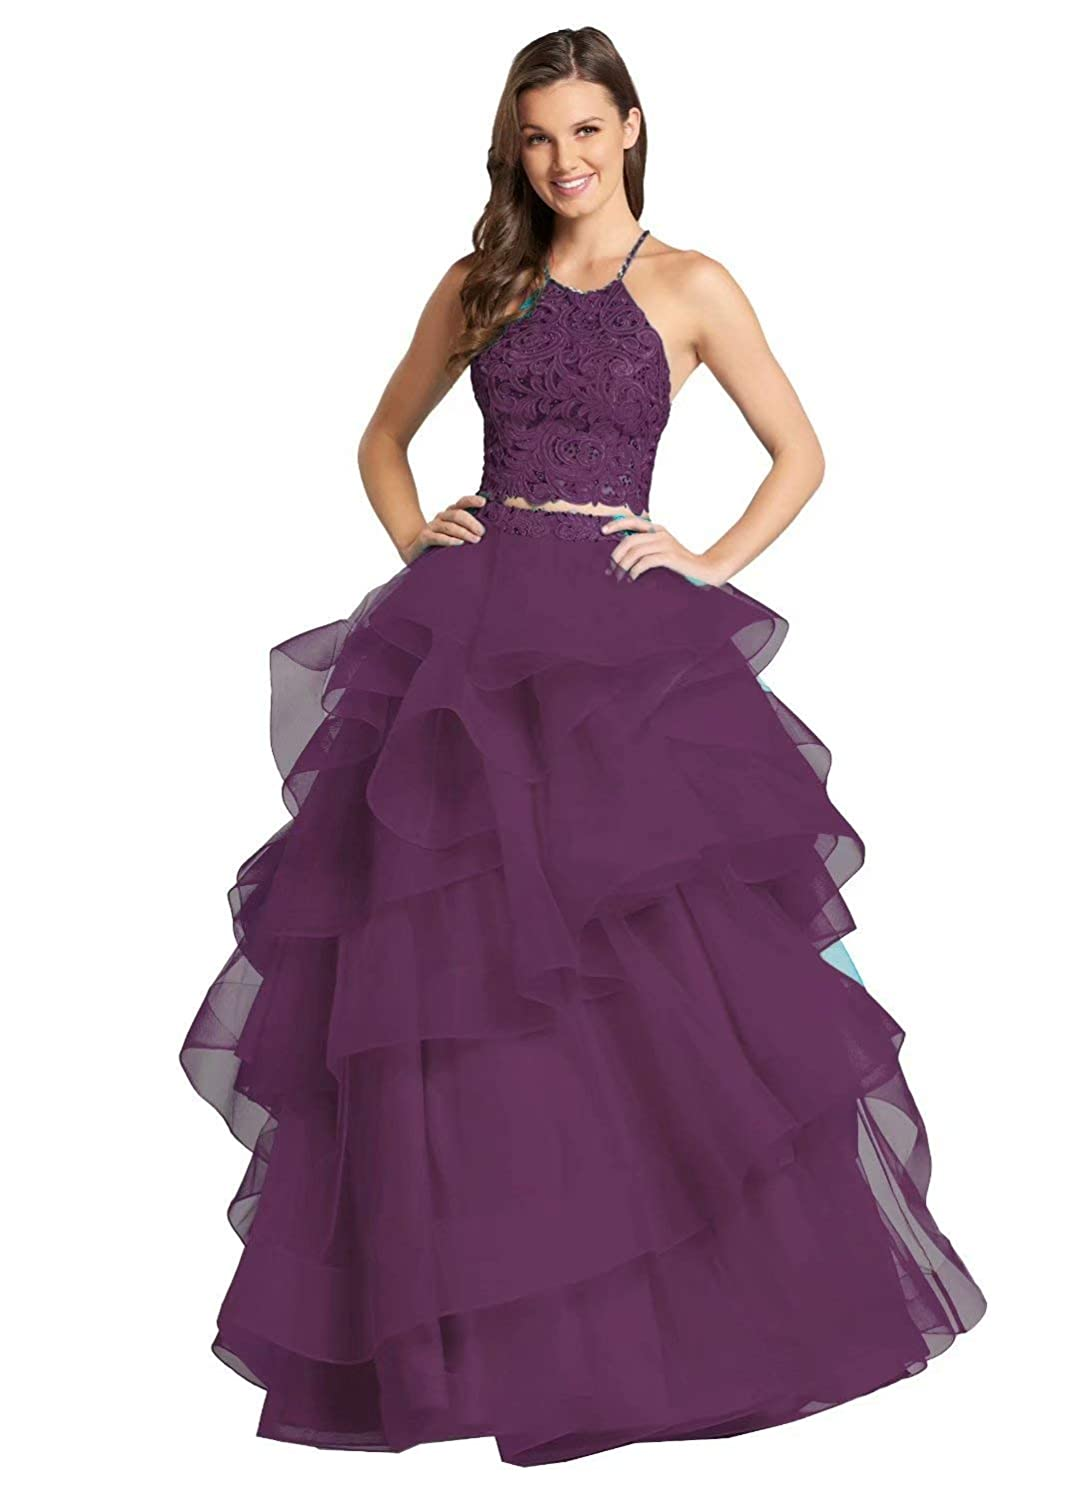 color 20 Unions Women Two Piece Beaded Formal Party Ball Gowns Long Ruffles Layered Tulle Prom Dresses